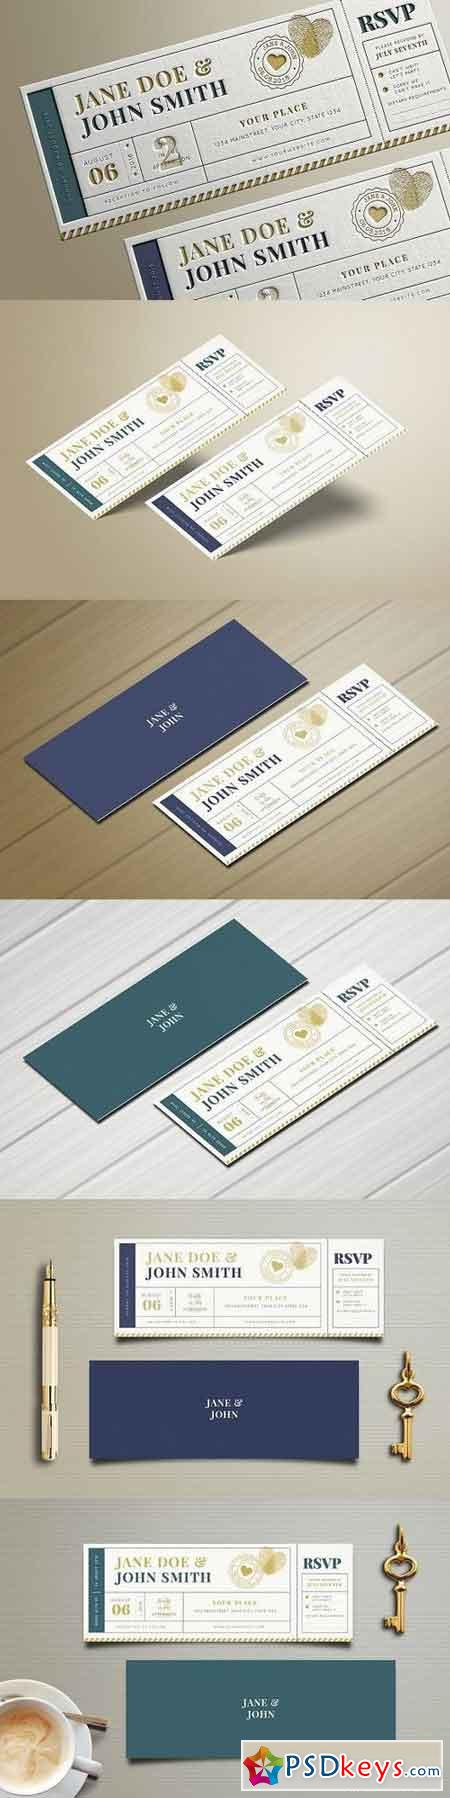 Wedding Invitation Ticket 1669459